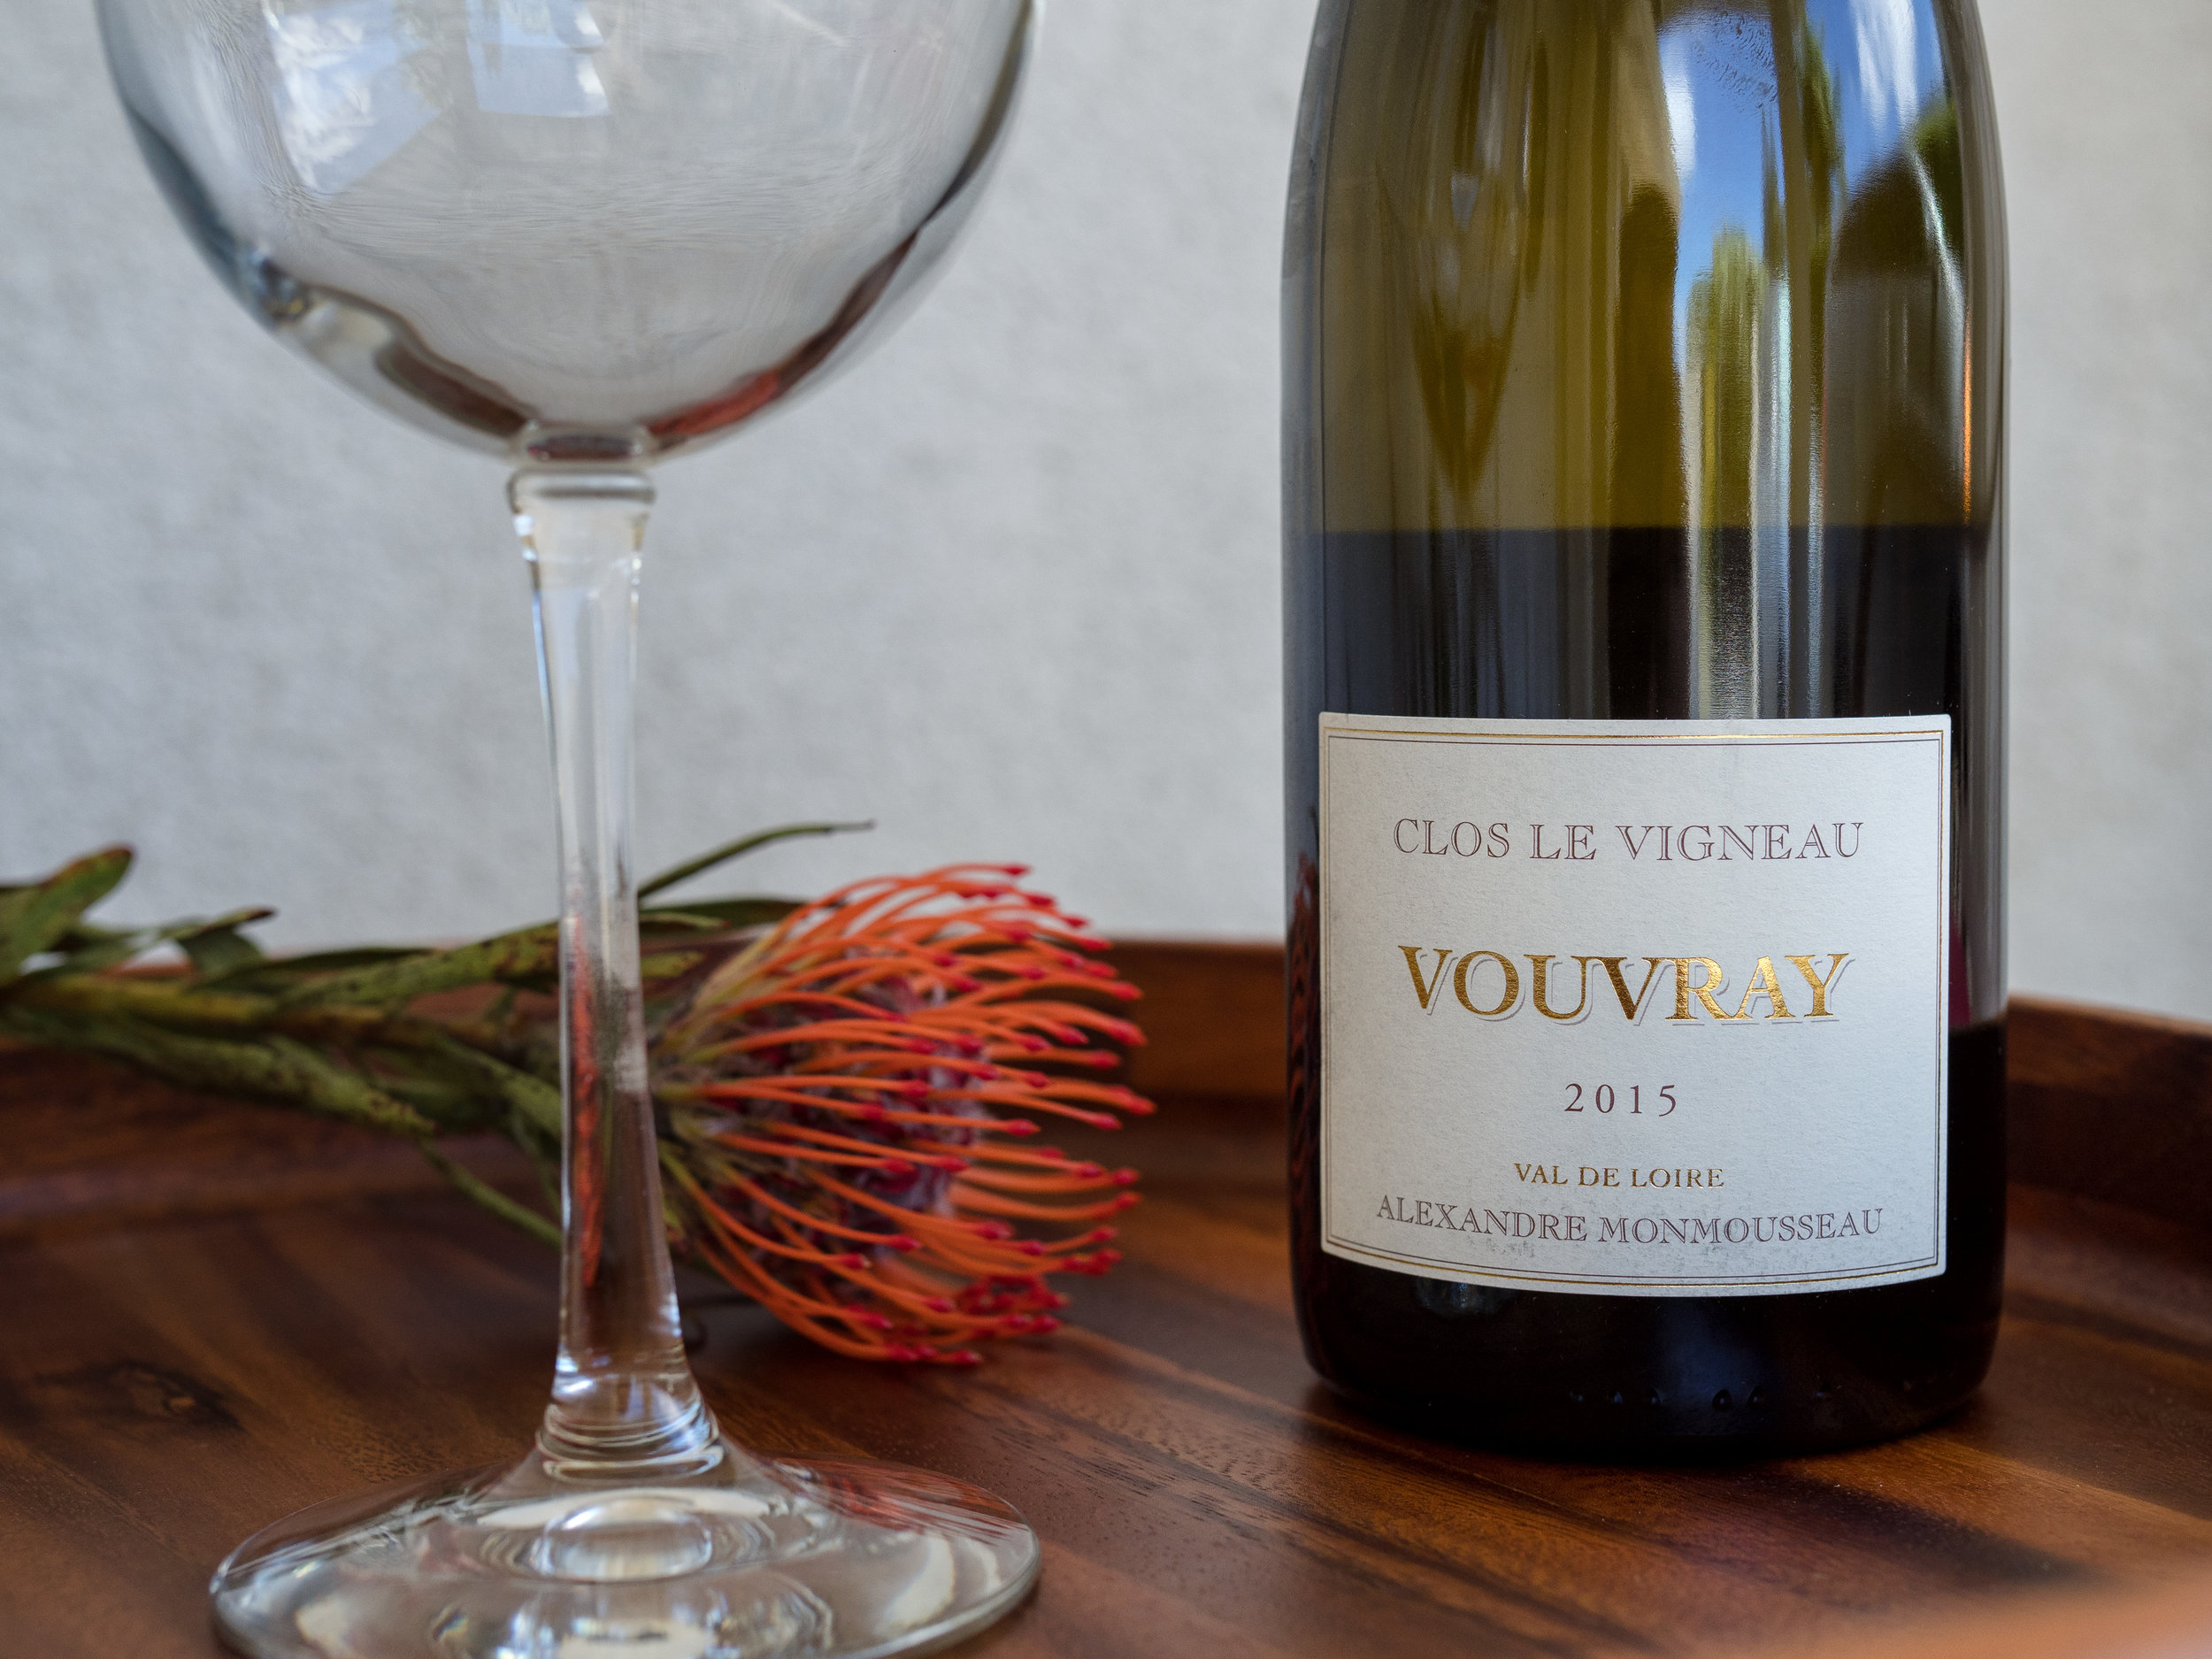 The French selection from Vouvray, available at Fujioka's Wine Times